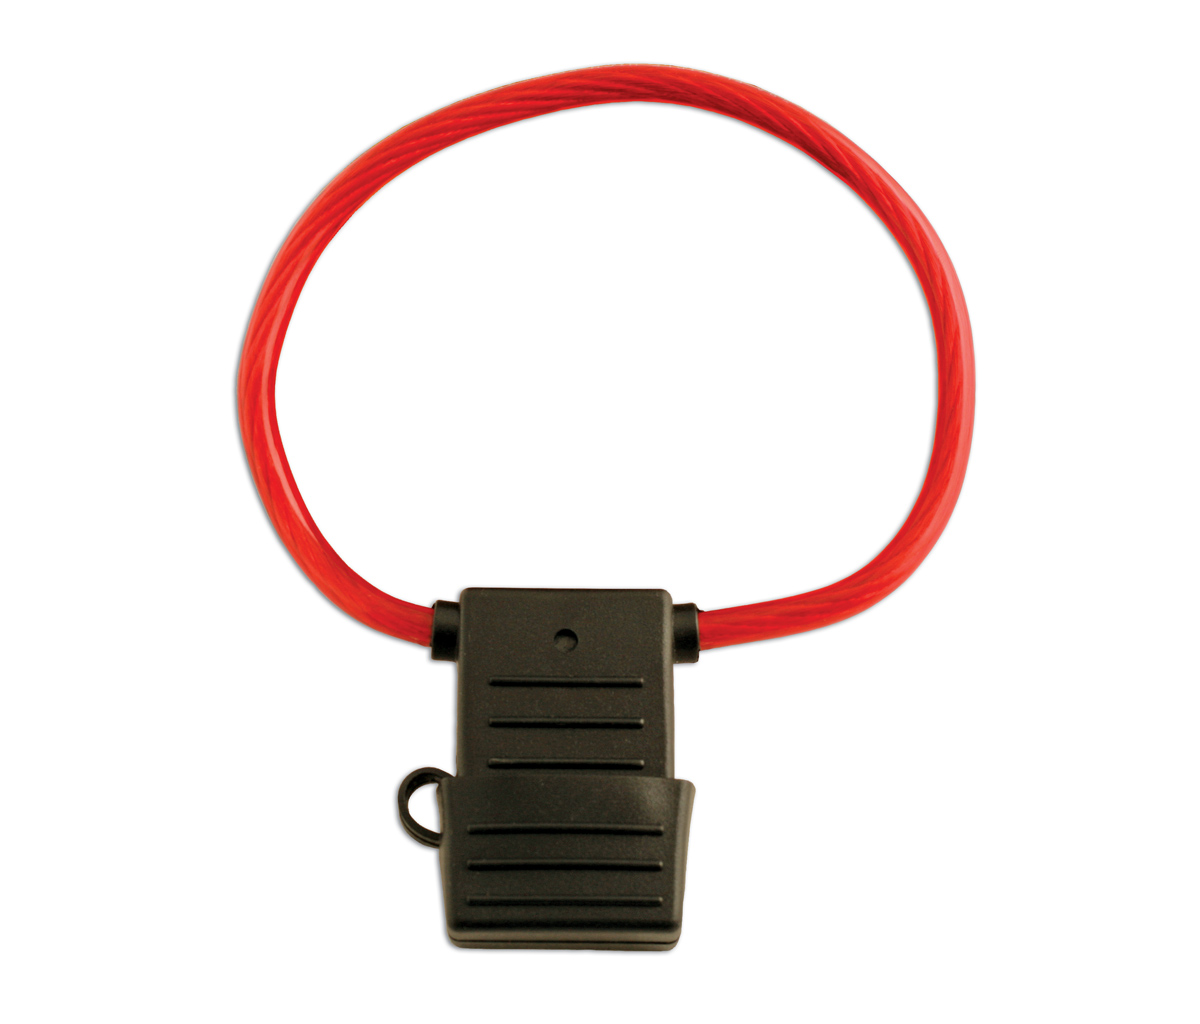 Splashproof Maxi Blade Fuse Holder Pk 10 Connect Workshop Addacircuit Mini 20amp Red Items Xlarge Image Of Consumables 30465